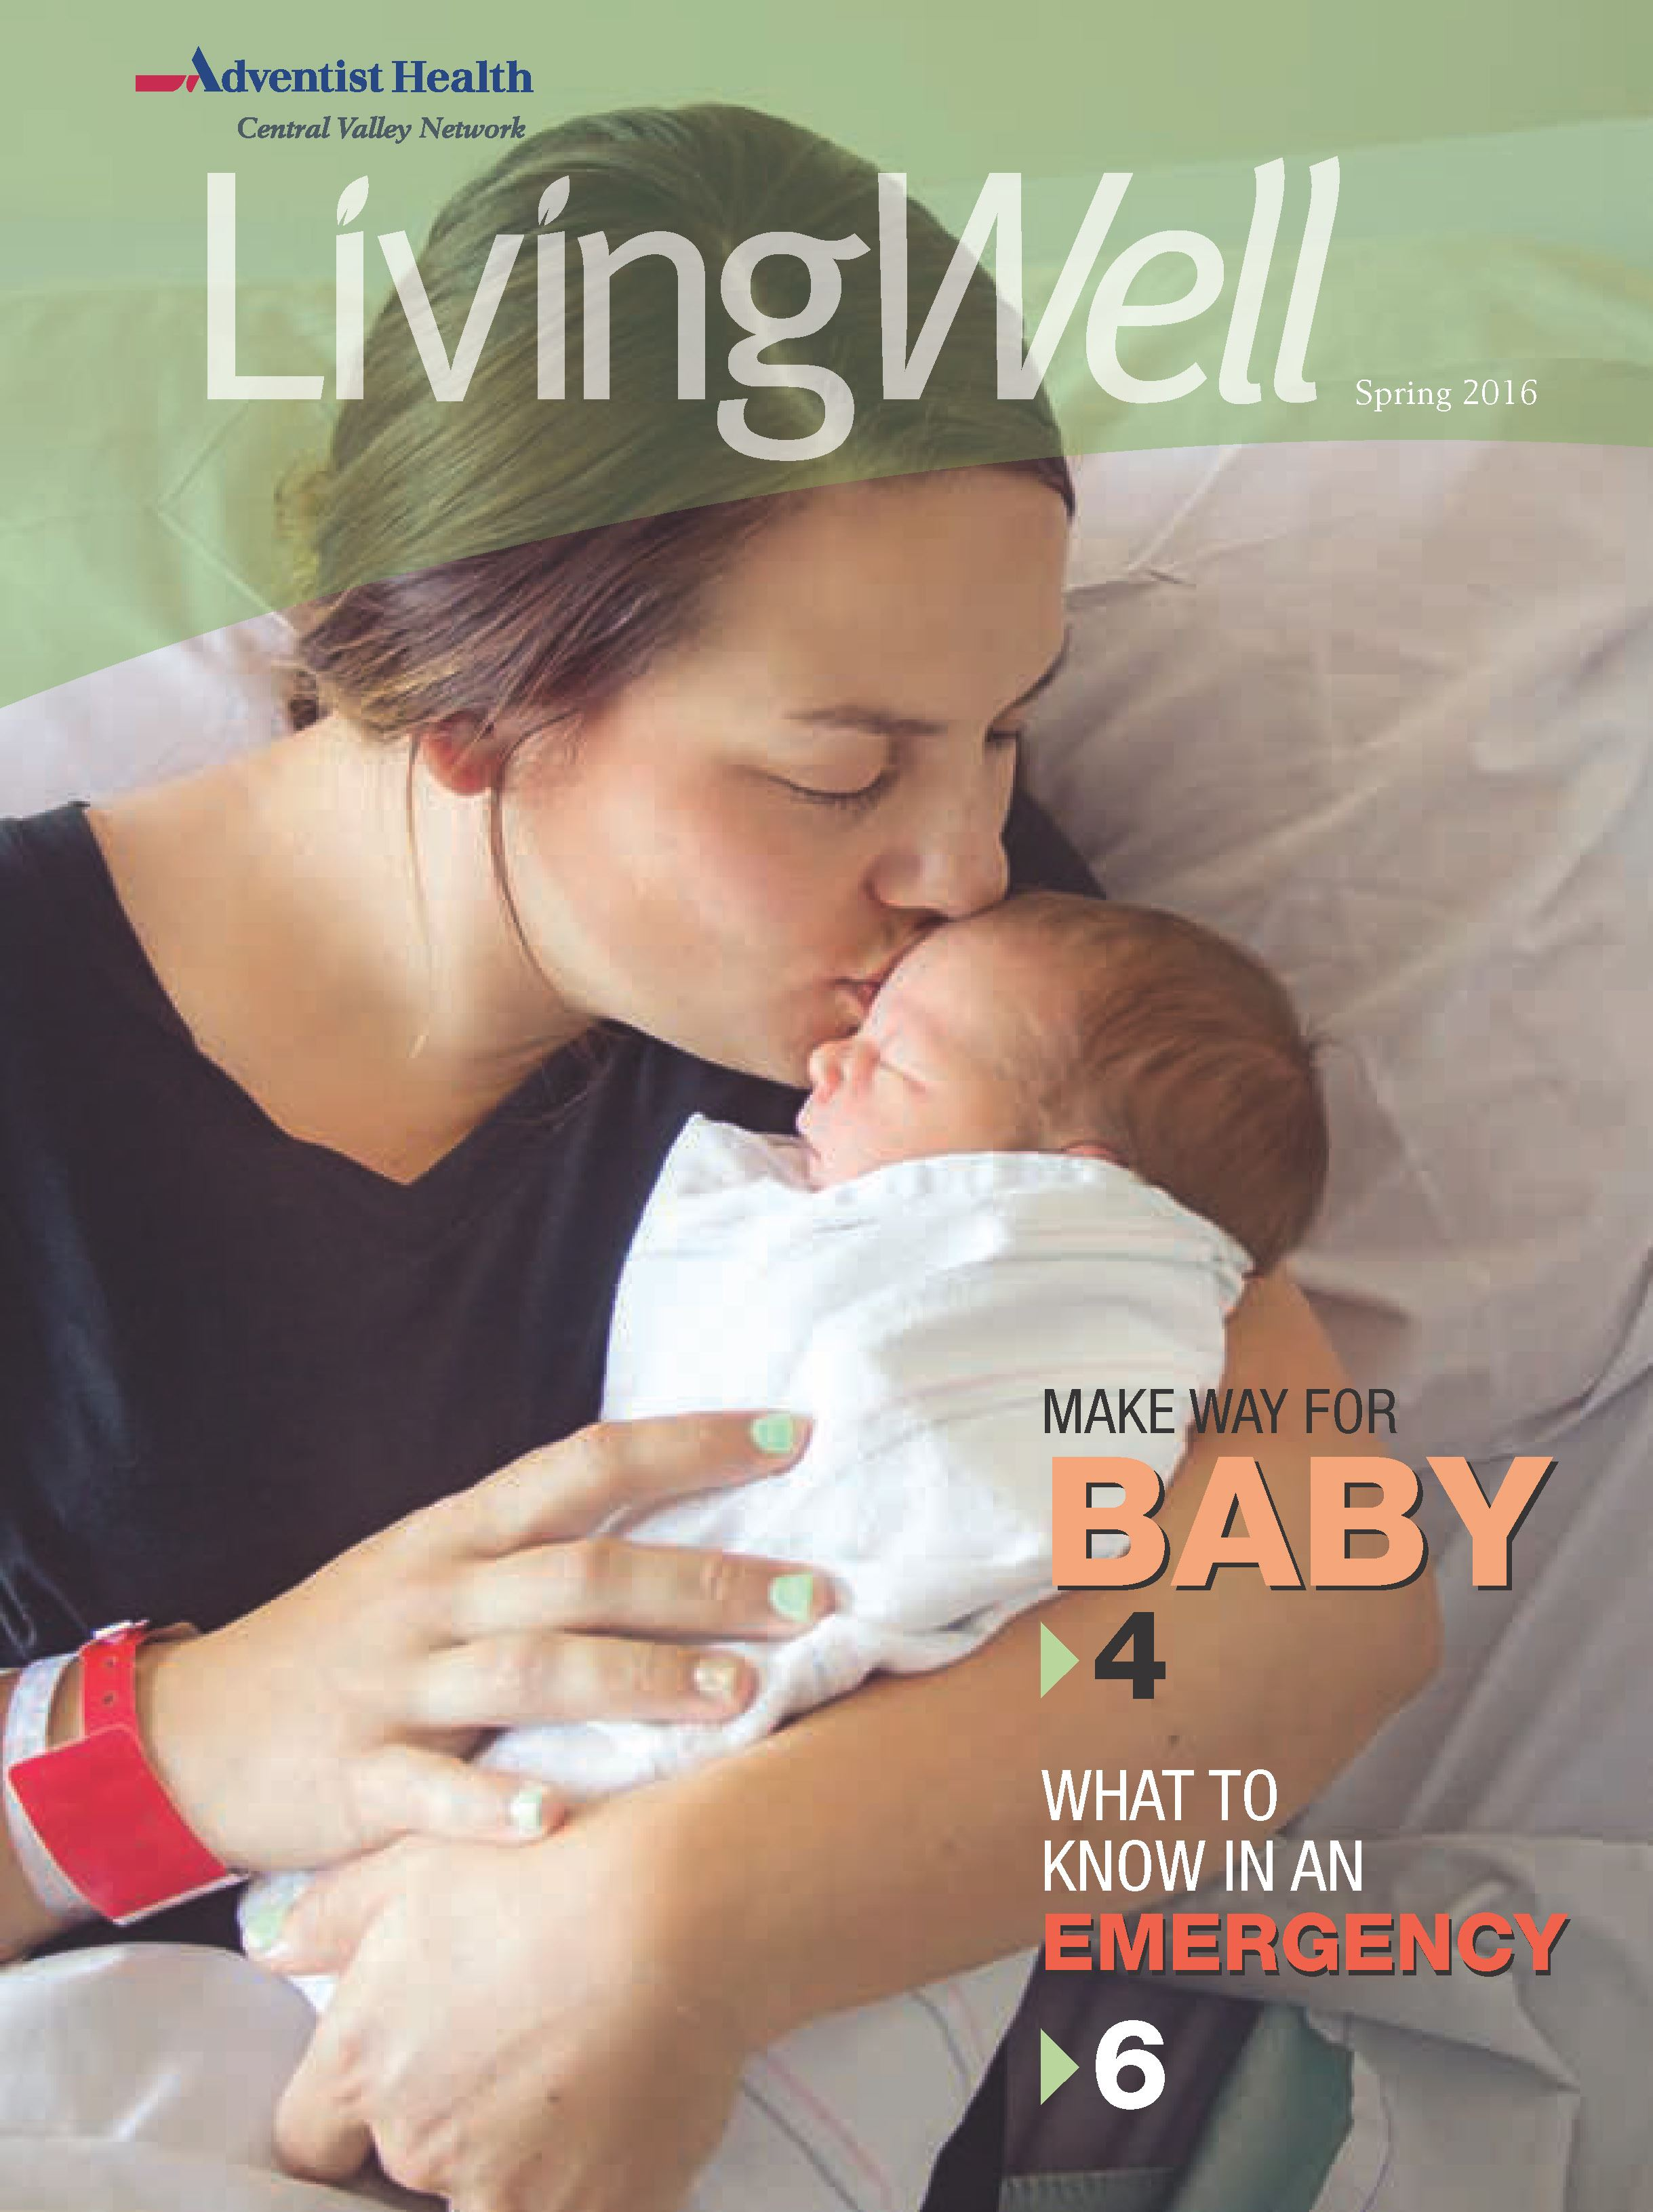 LivingWell Hanford Edition Spring 2016